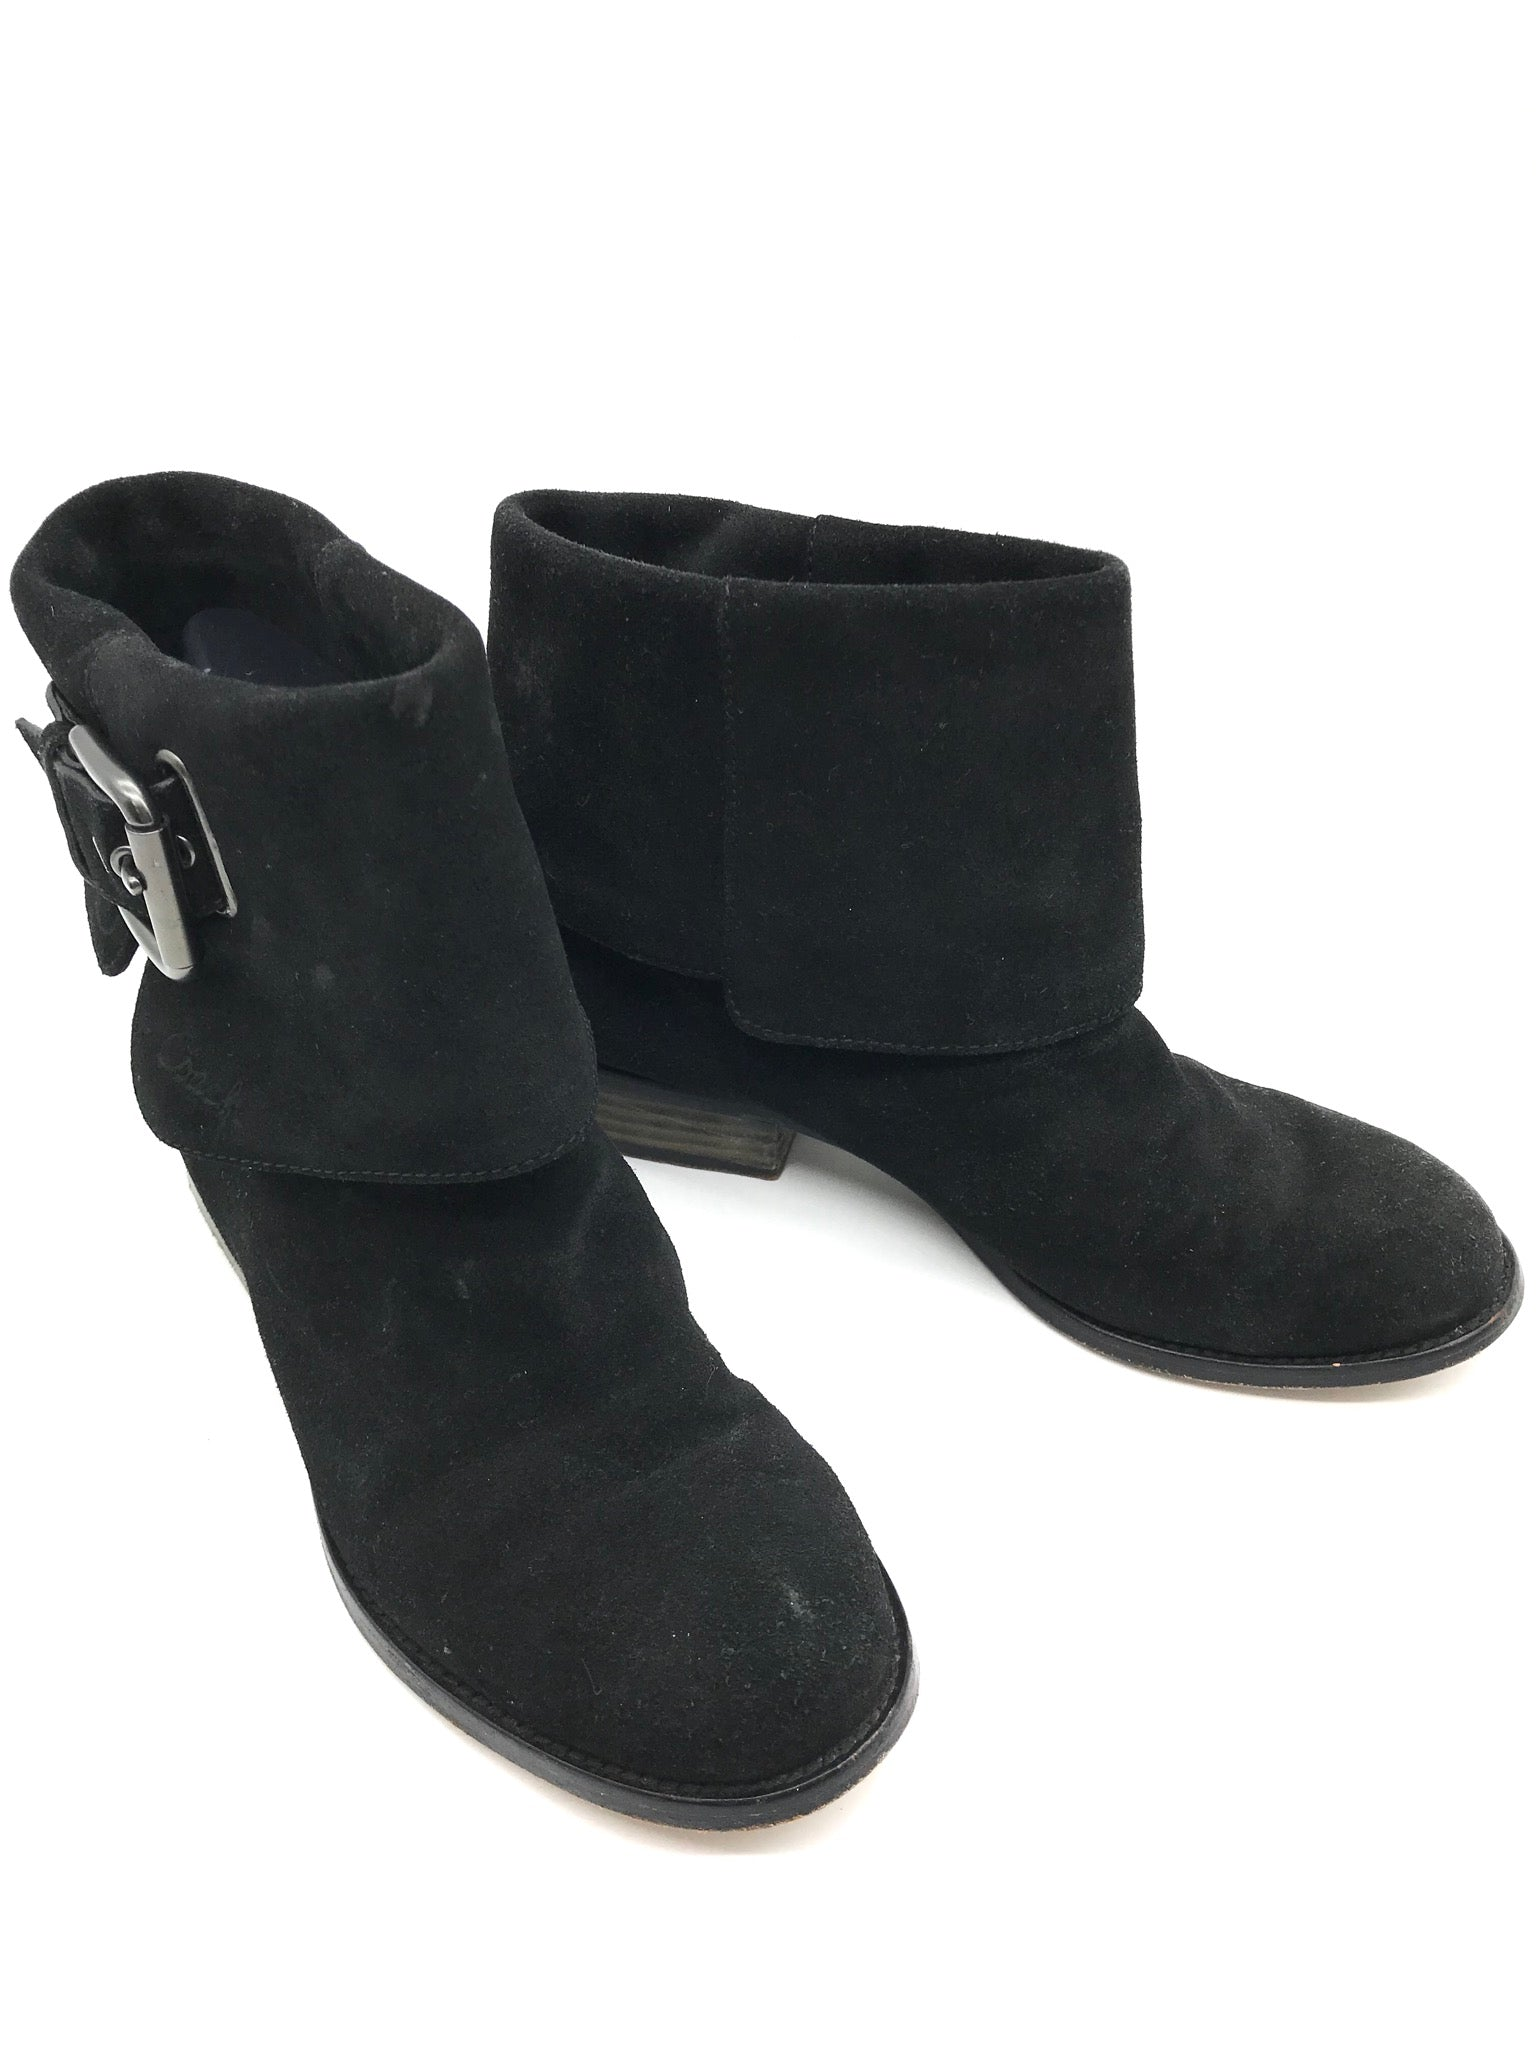 Photo #3 - BRAND: COACH <BR>STYLE: BOOTS ANKLE <BR>COLOR: BLACK <BR>SIZE: 7.5 <BR>SKU: 262-26275-54673<BR>SOME WEAR AROUND THE TOES - AS IS<BR>DESIGNER BRAND - FINAL SALE